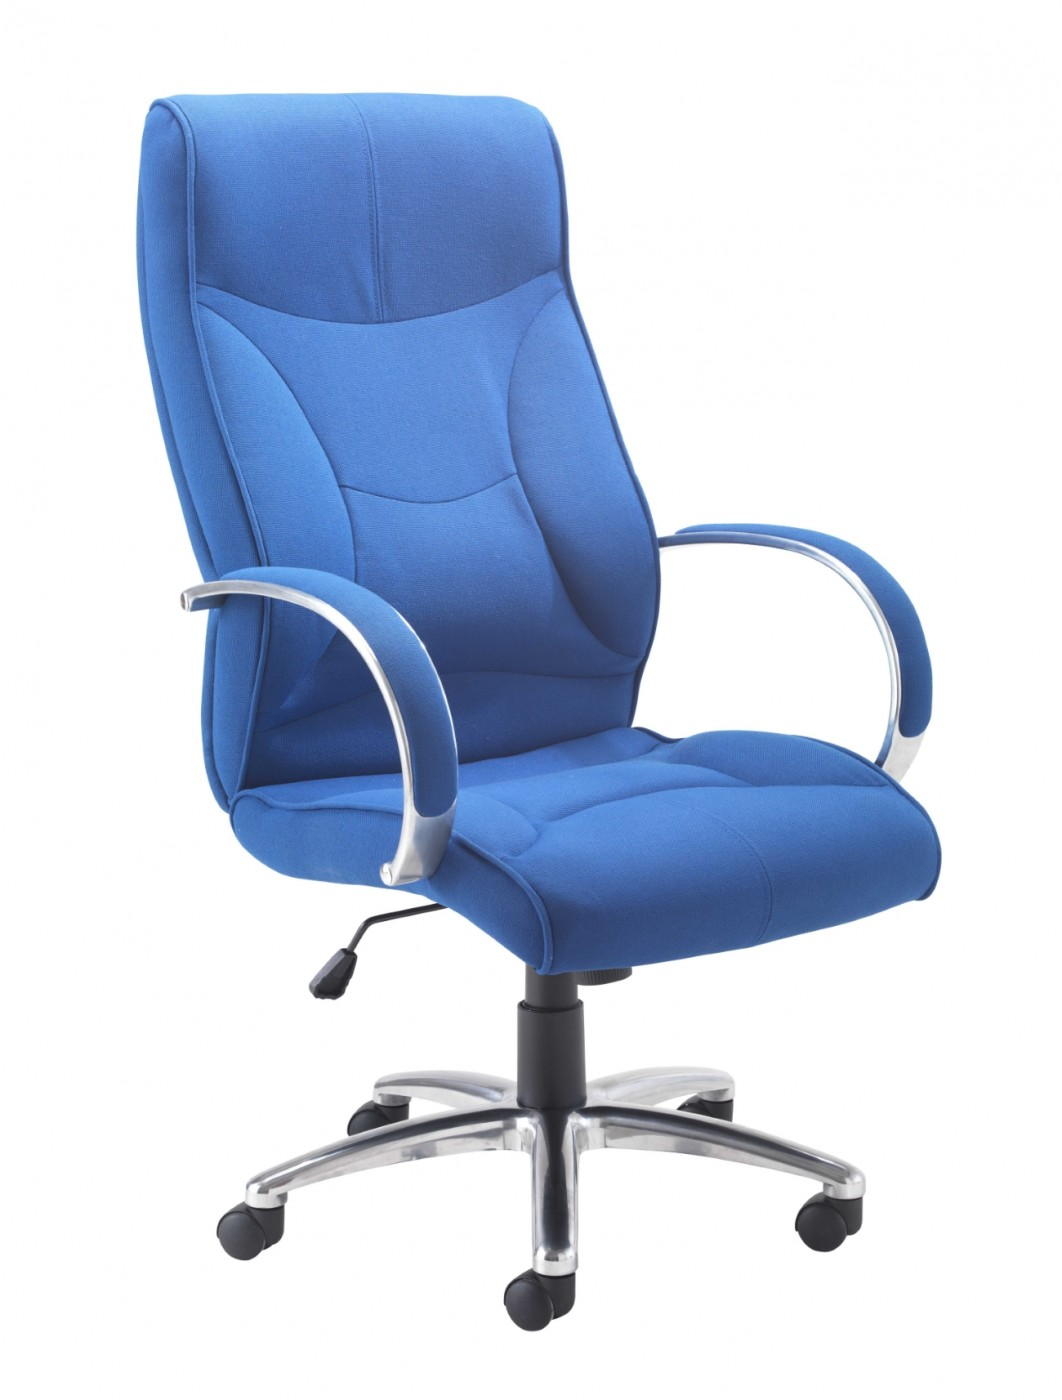 office chairs tc whist executive fabric office chair. Black Bedroom Furniture Sets. Home Design Ideas